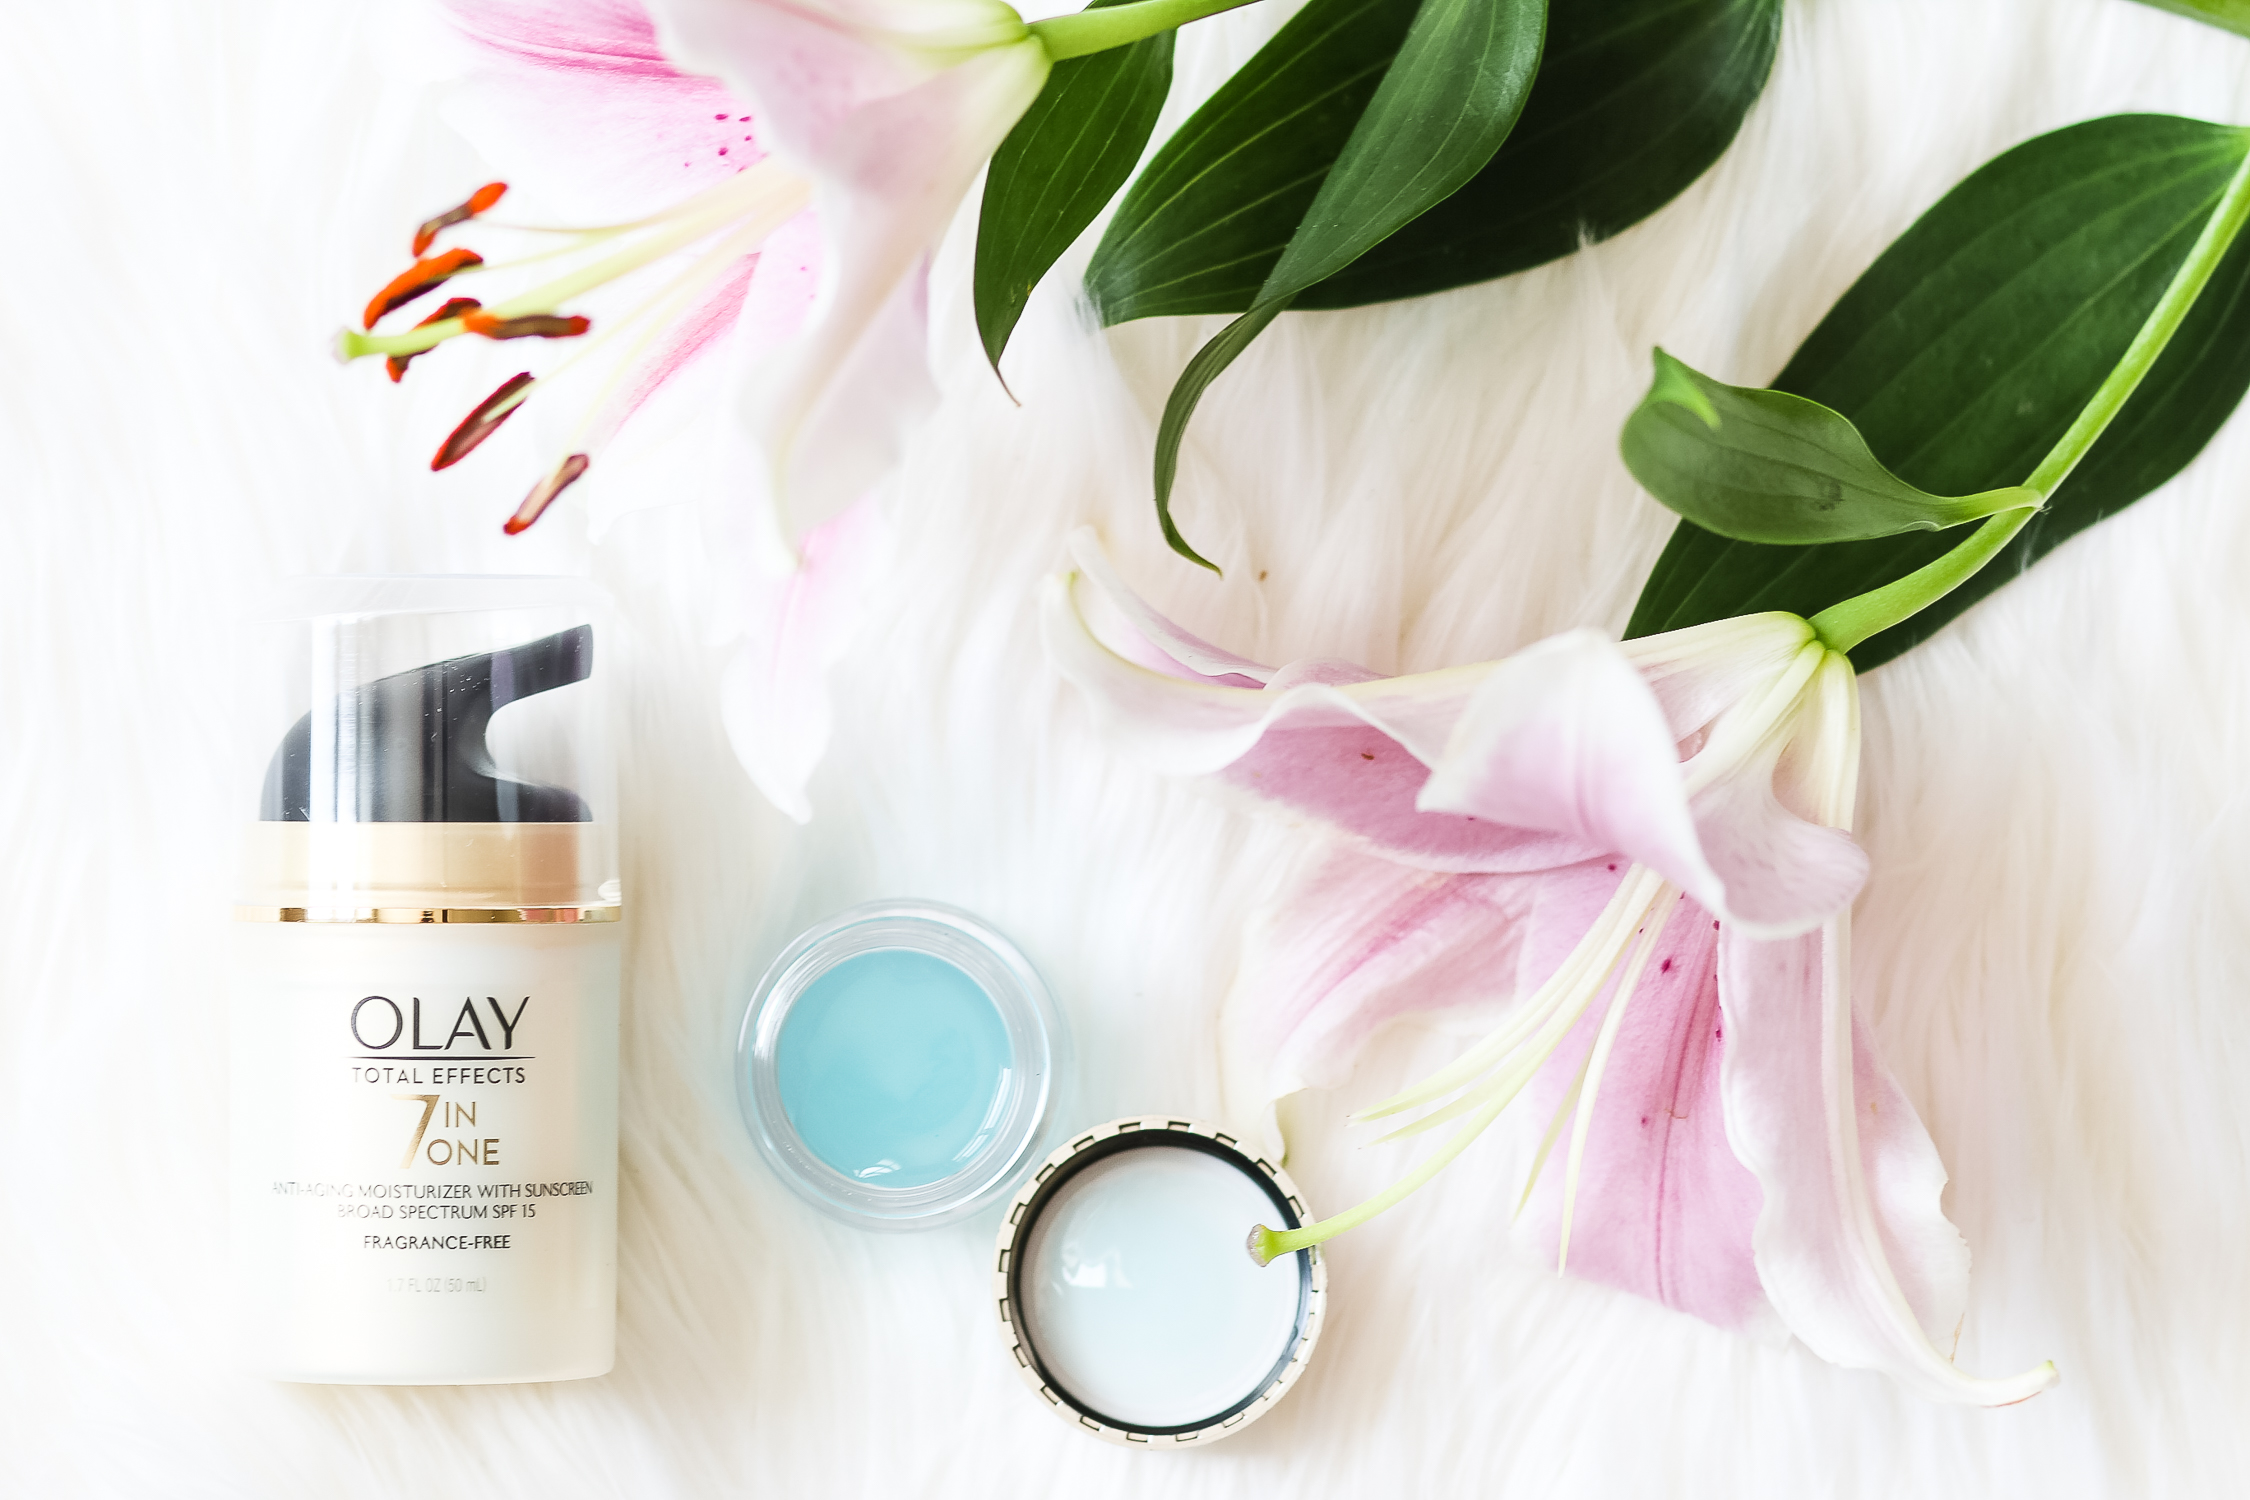 What happened when I used Olay Total Effects Moisturizer with SPF 15 & Olay Eyes Deep Hydrating Eye Gel for 28 days in place of my go-to moisturizer and eye cream | Olay 28 Day Challenge | Best Olay moisturizer with sunscreen for fast results | Best Olay products | I took the Olay 28-Day Challenge (And Here's What Happened) by southern blogger Stephanie Ziajka from Diary of a Debutante